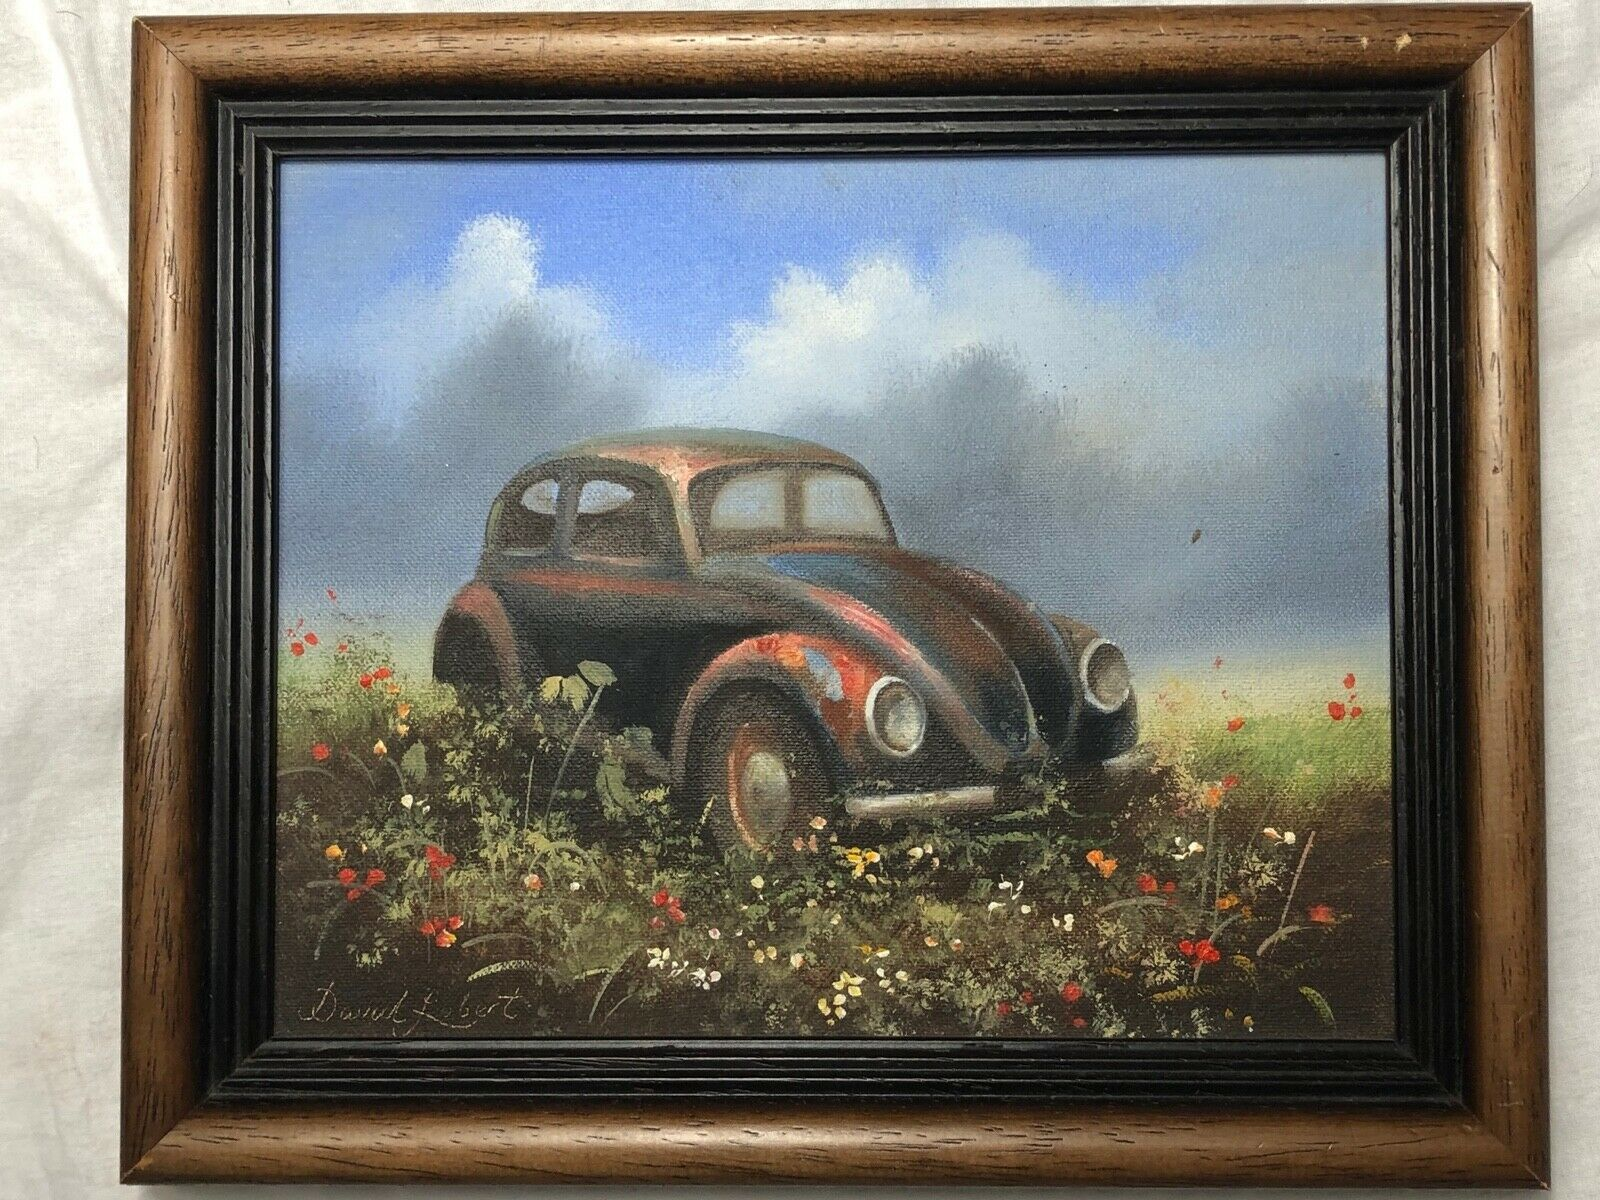 Primary image for Oil Painting Distressed VW Beetle Rusty Car In Floral Field Signed David Robert